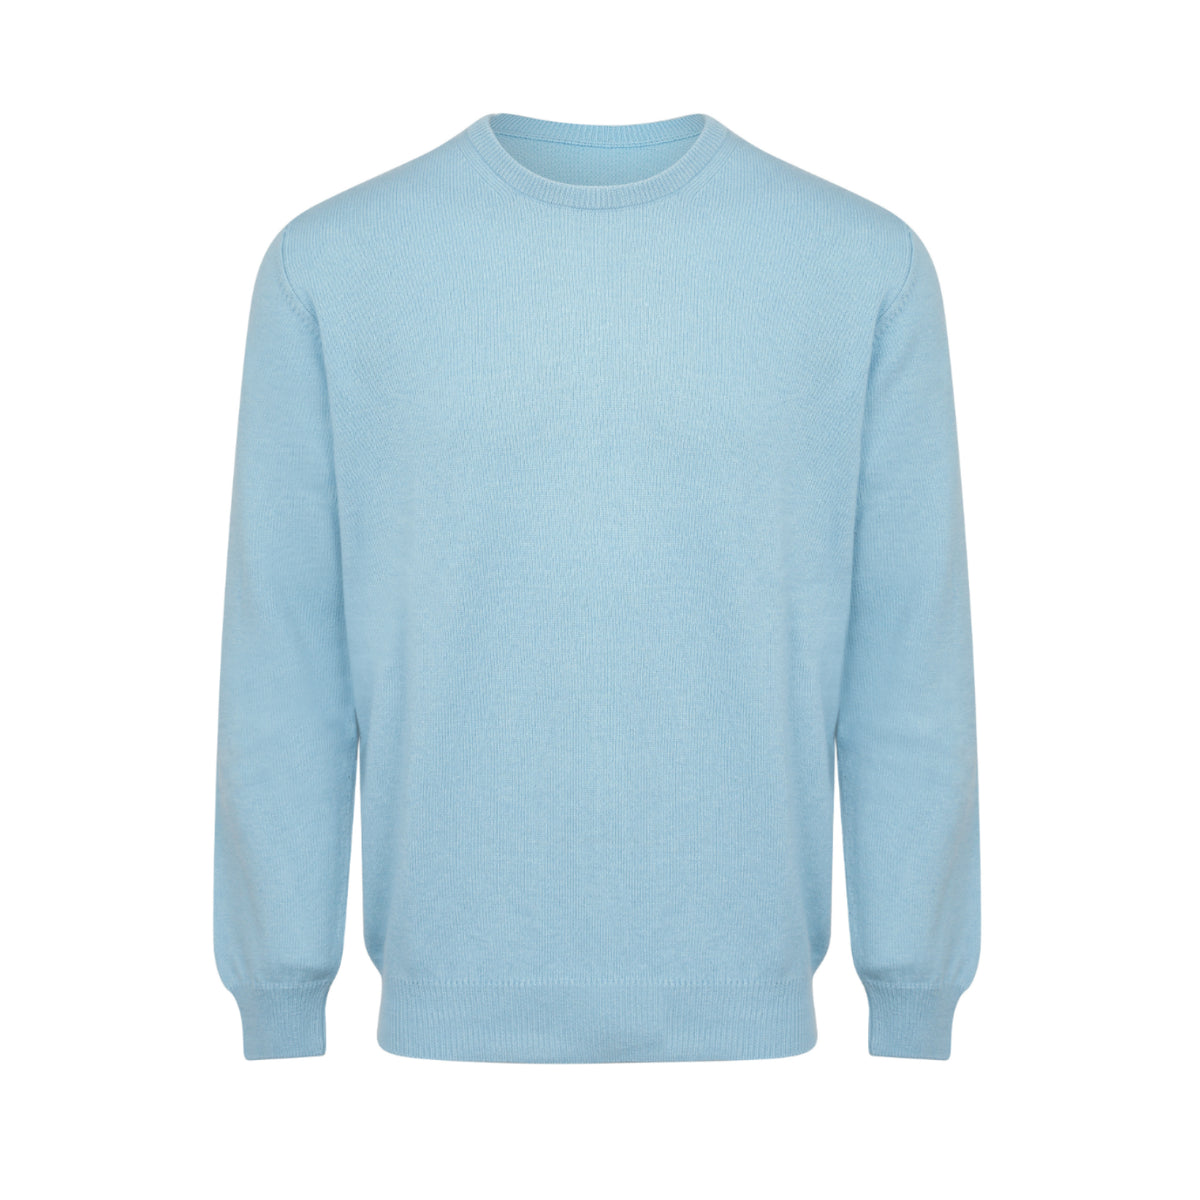 Johnsons Cashmere | Mens Light Blue Cashmere Sweater | 3 ply Cashmere | shop now at The Cashmere Choice | London